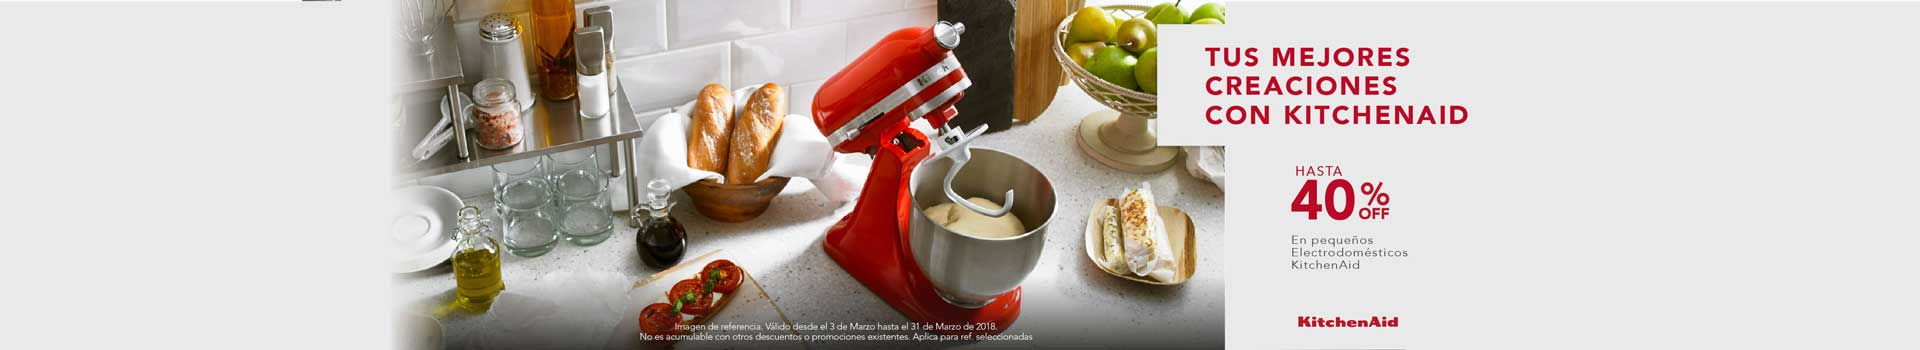 CAT-PELECT-ALI-AKyKT-5-menores-kitchenaid-desayunos-especiales-cat-marzo22-31